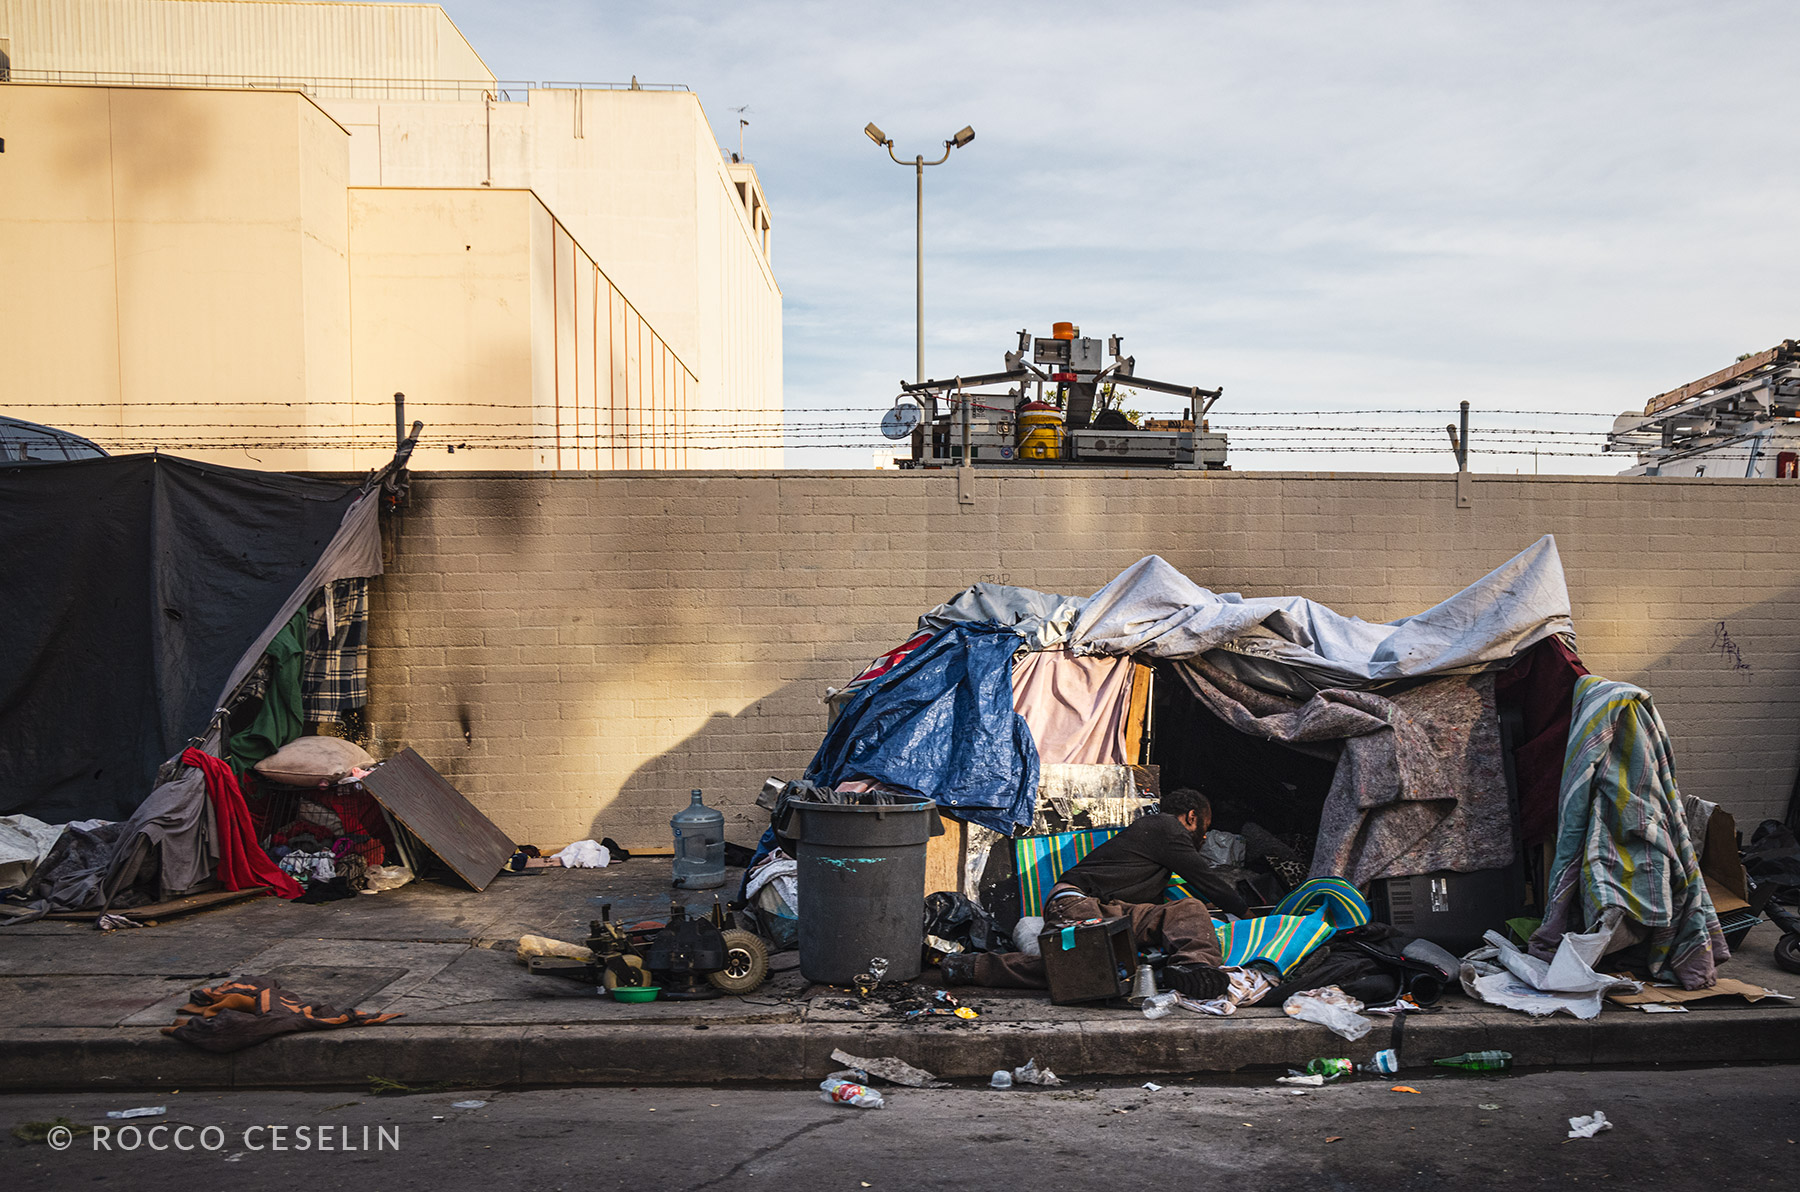 Side streets in Hollywood. Decadence and poverty